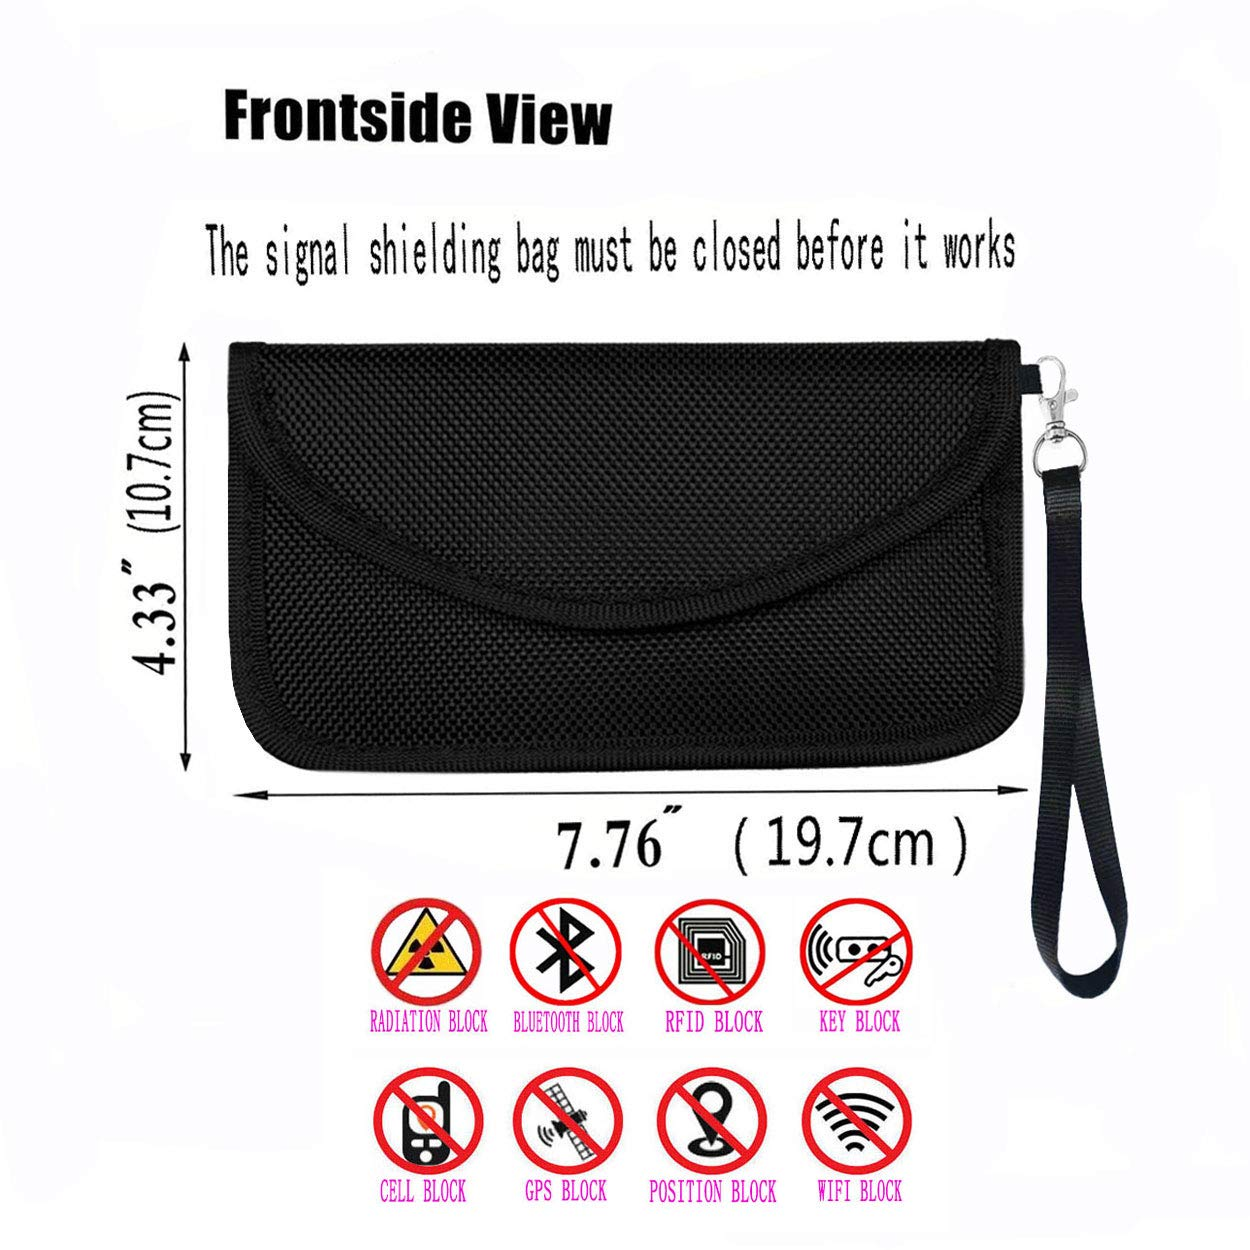 Faraday Bag,100/% Anti-Spying Anti-Tracking GPS RFID Signal Blocker Bag for Cell Phone Privacy Protection and Car Key FOB, Healthy Handset Privacy Protection Data Security /& Travel.